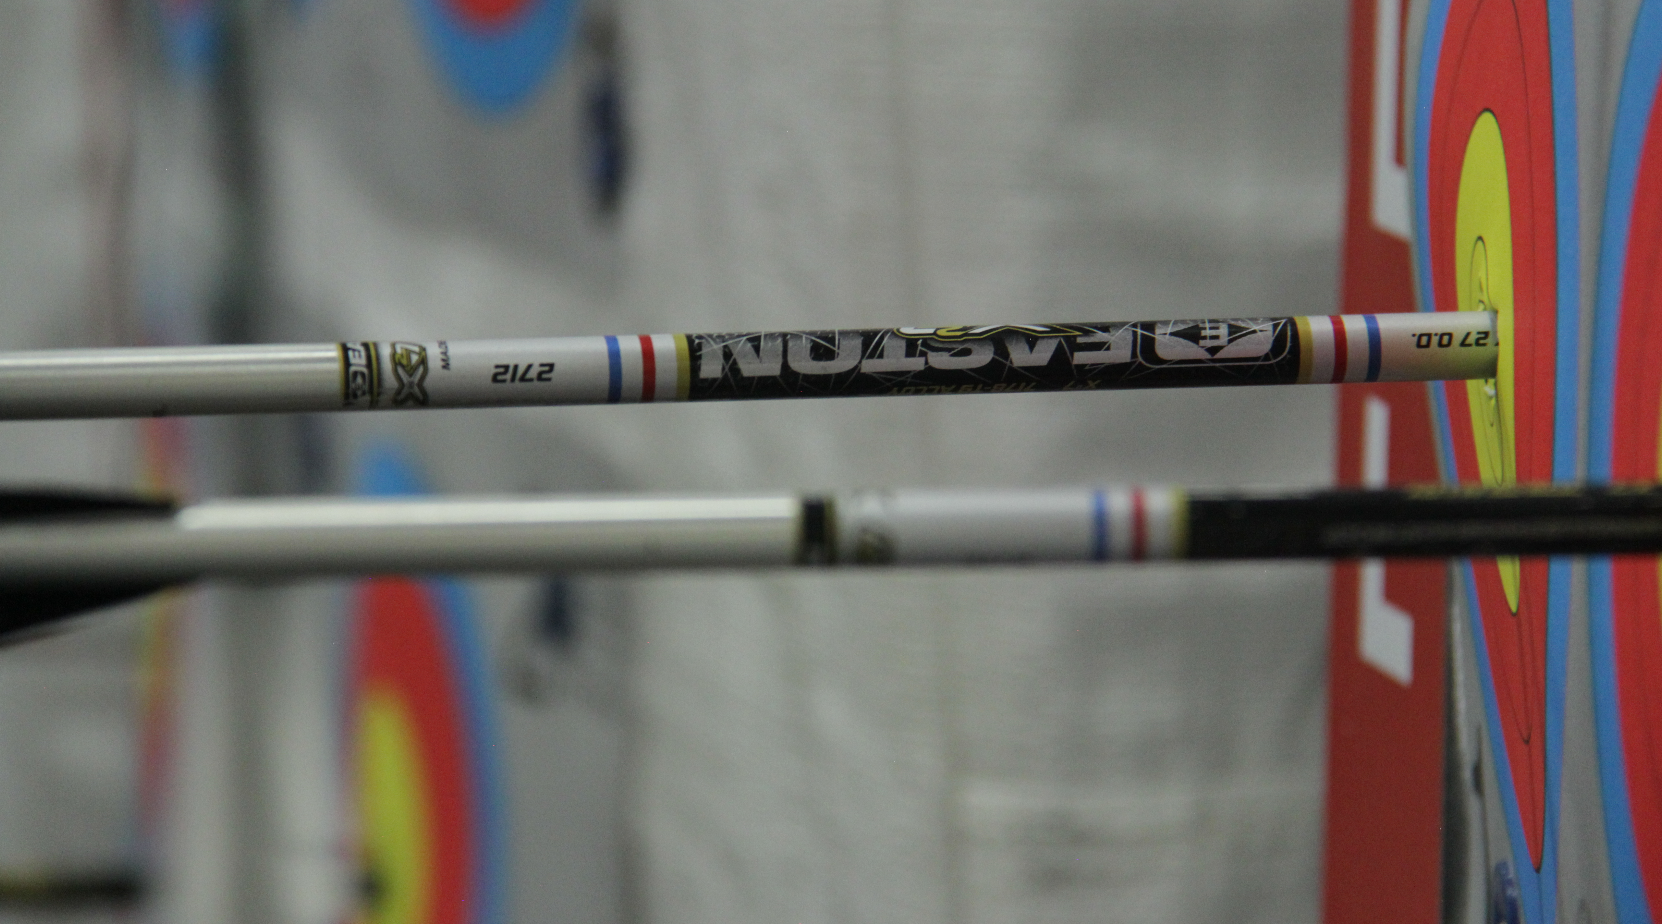 Easton Archery - Gearing Up For Indoor Target Archery